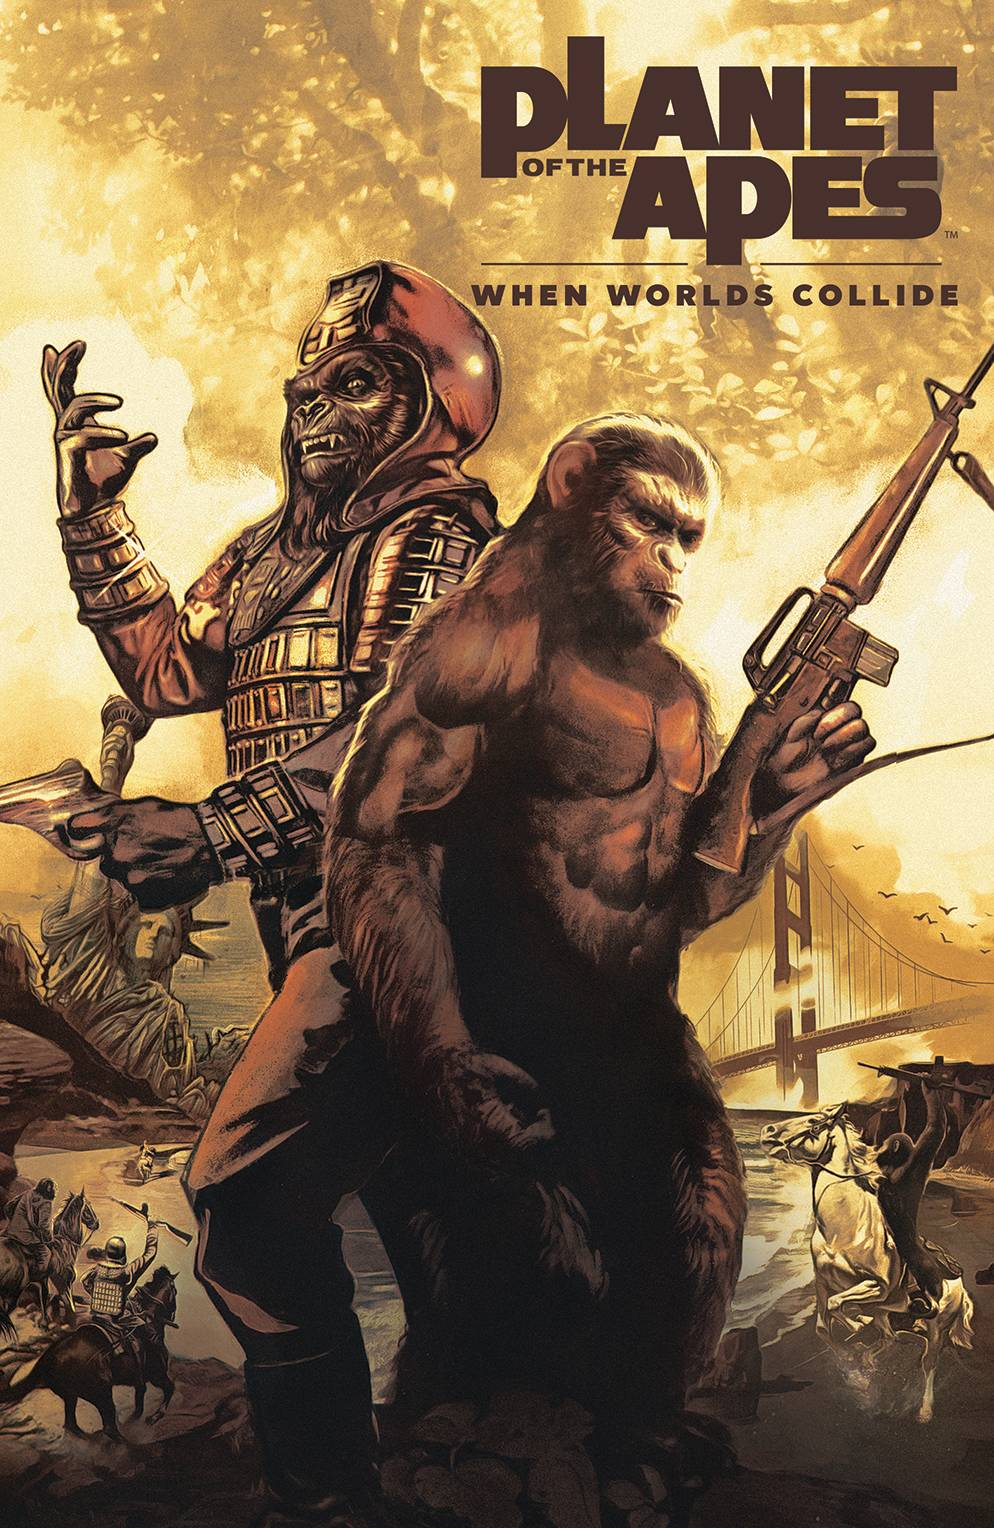 PLANET OF THE APES WHEN WORLDS COLLIDE.jpg